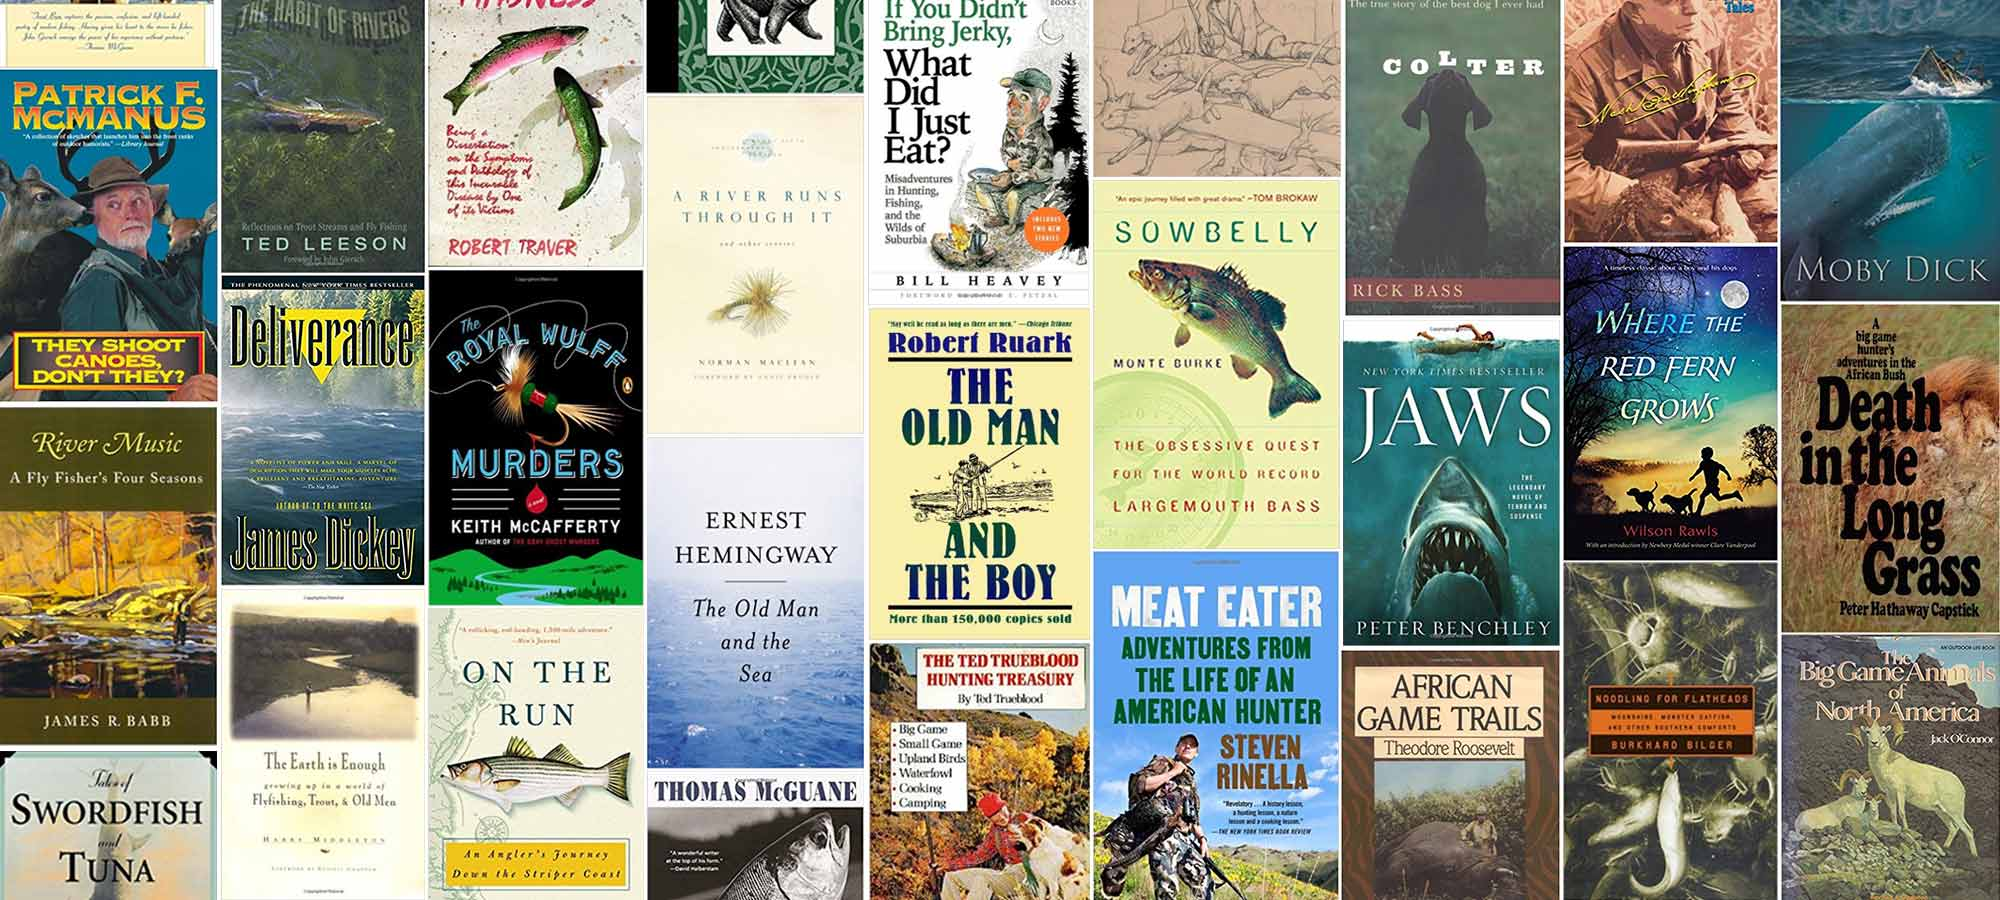 60 best outdoorsman books